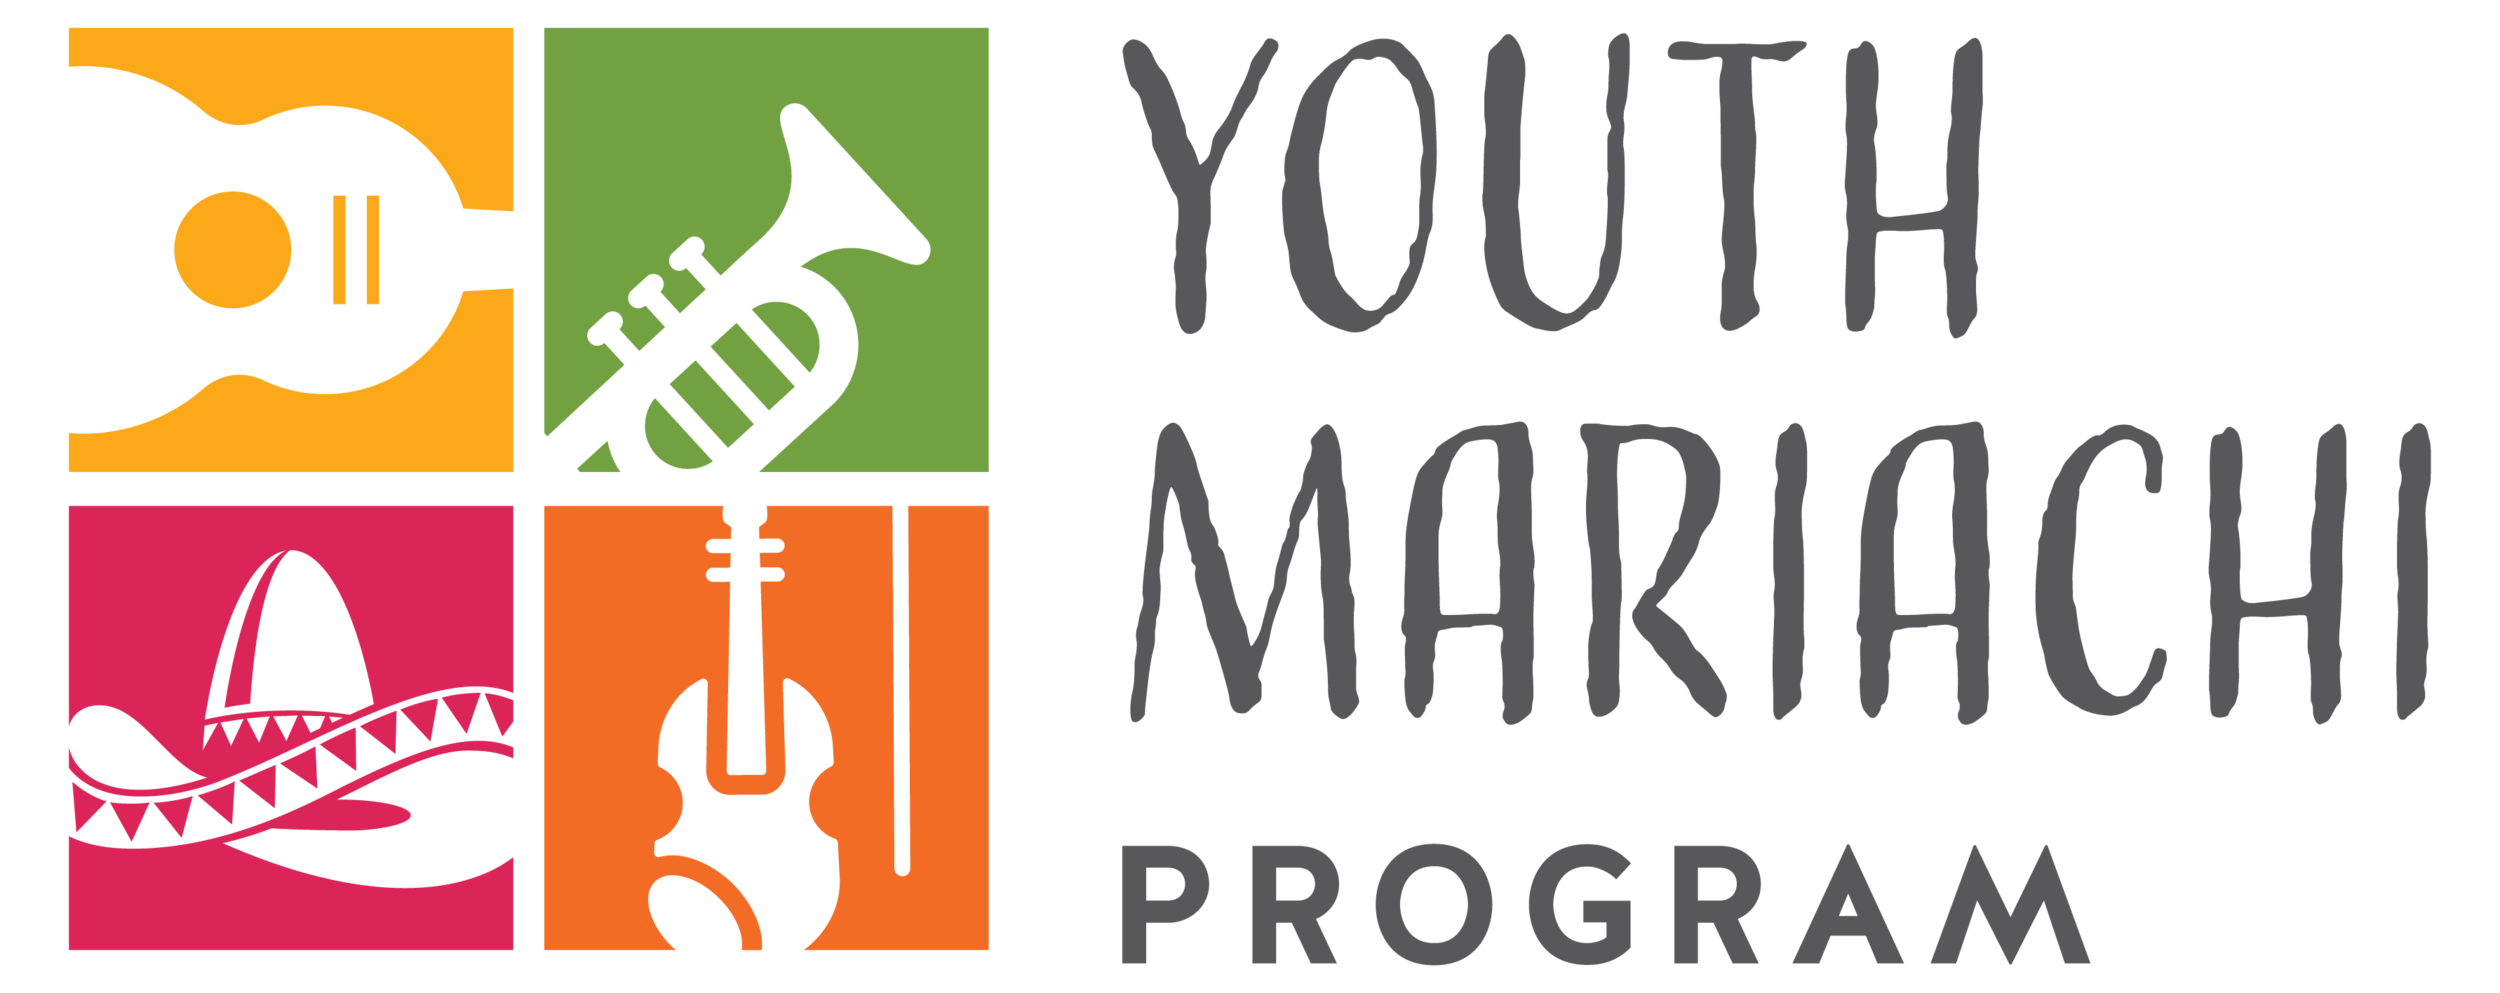 Youth_Mariachi color-01.png